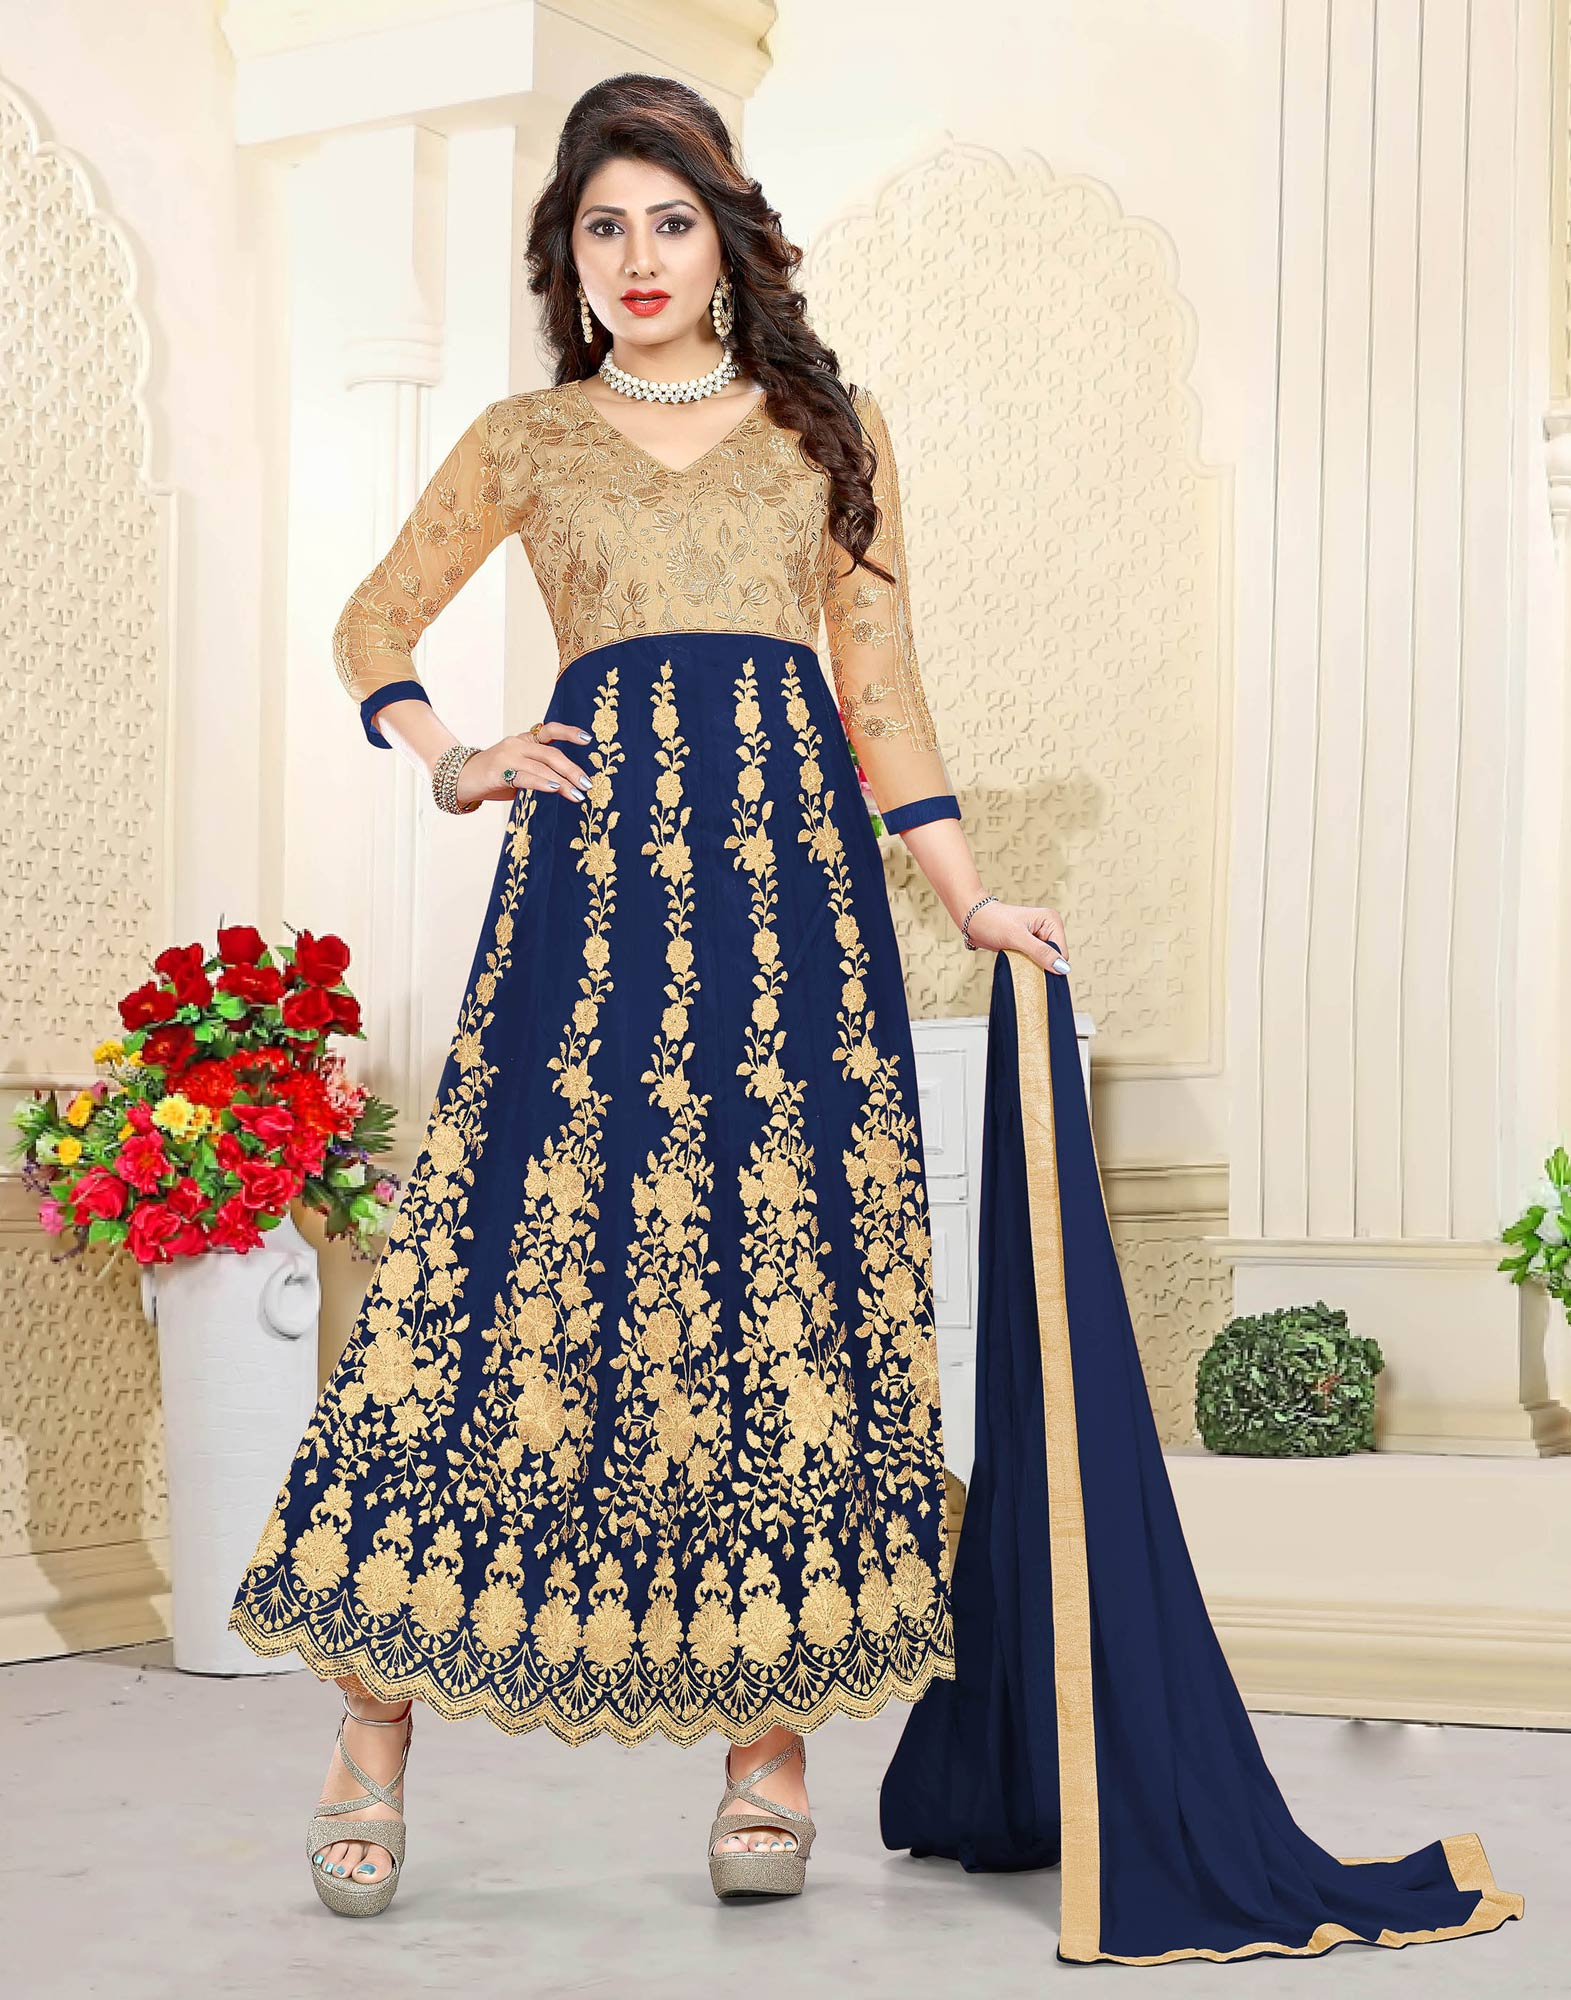 Mesmeric Beige-Navy Blue Colored Heavy Embroidered Art Silk-Net Lehenga / Anarkali